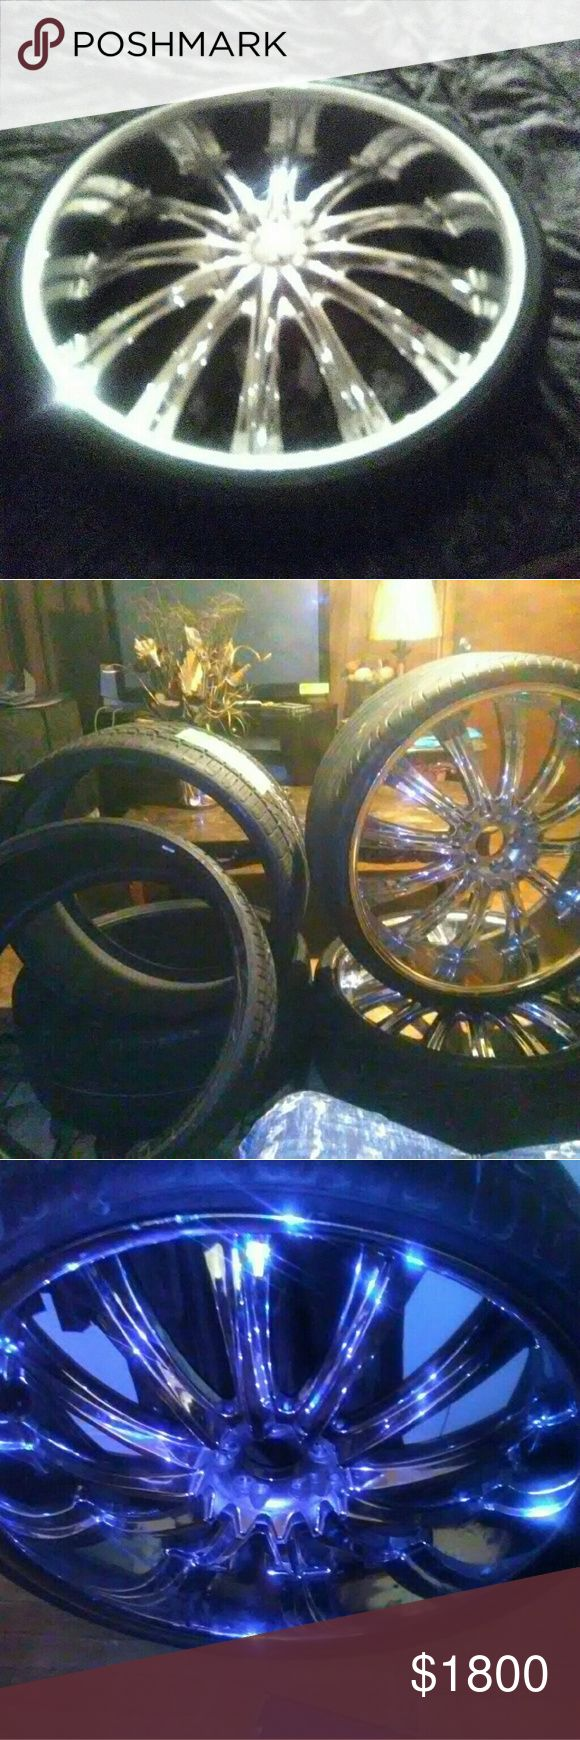 26 inch rims Need one center cap got a few scratches. bentchi Other